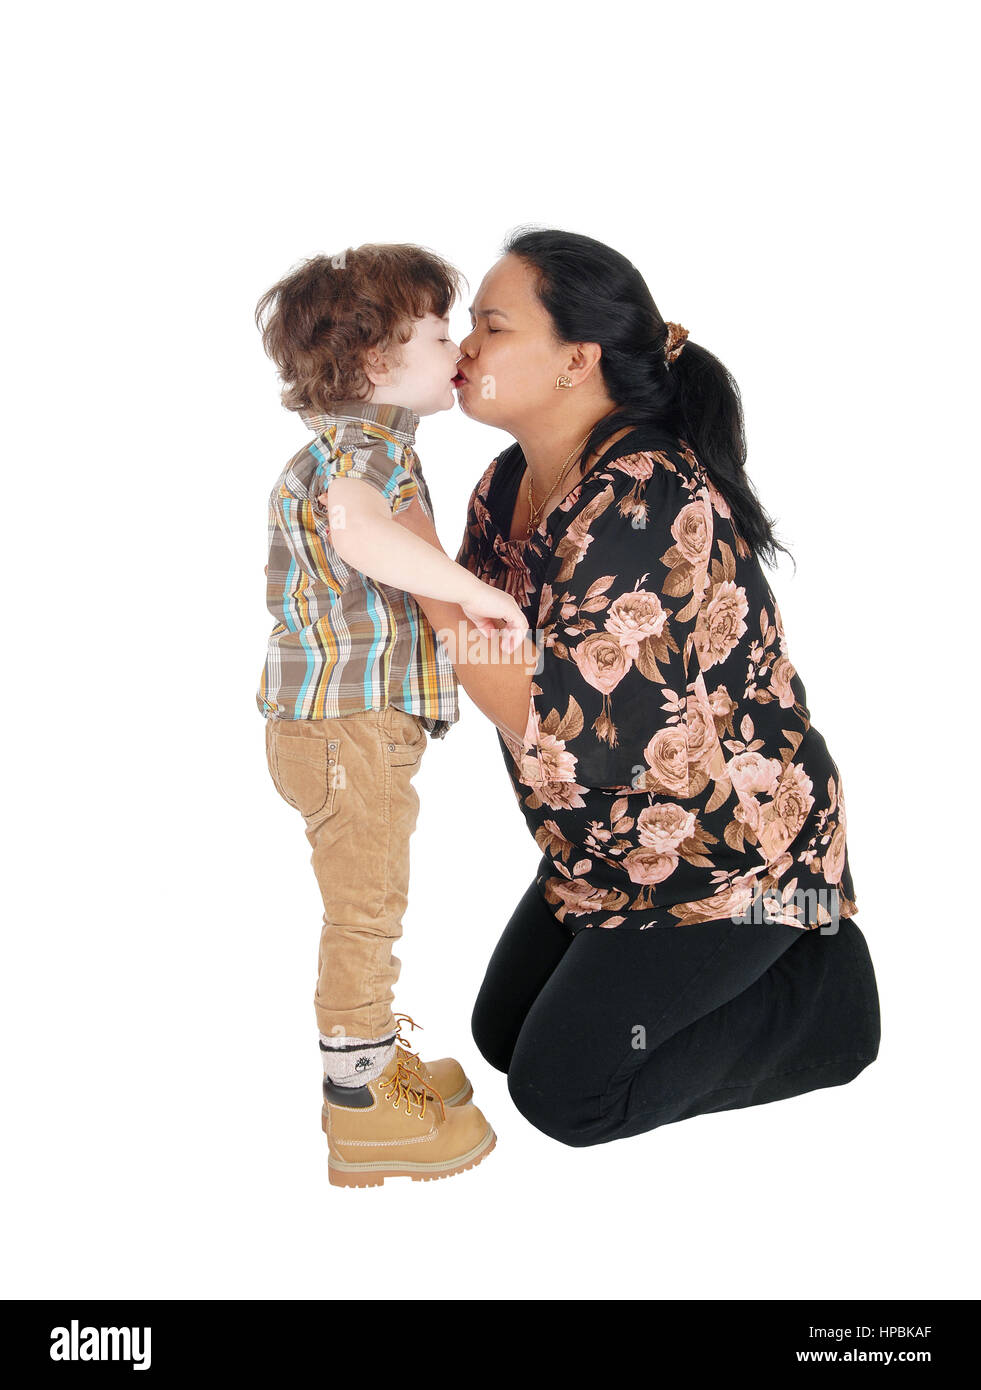 A Filipino nanny kneeling on the floor and kissing the little boy, standing in front of her, isolated for white - Stock Image